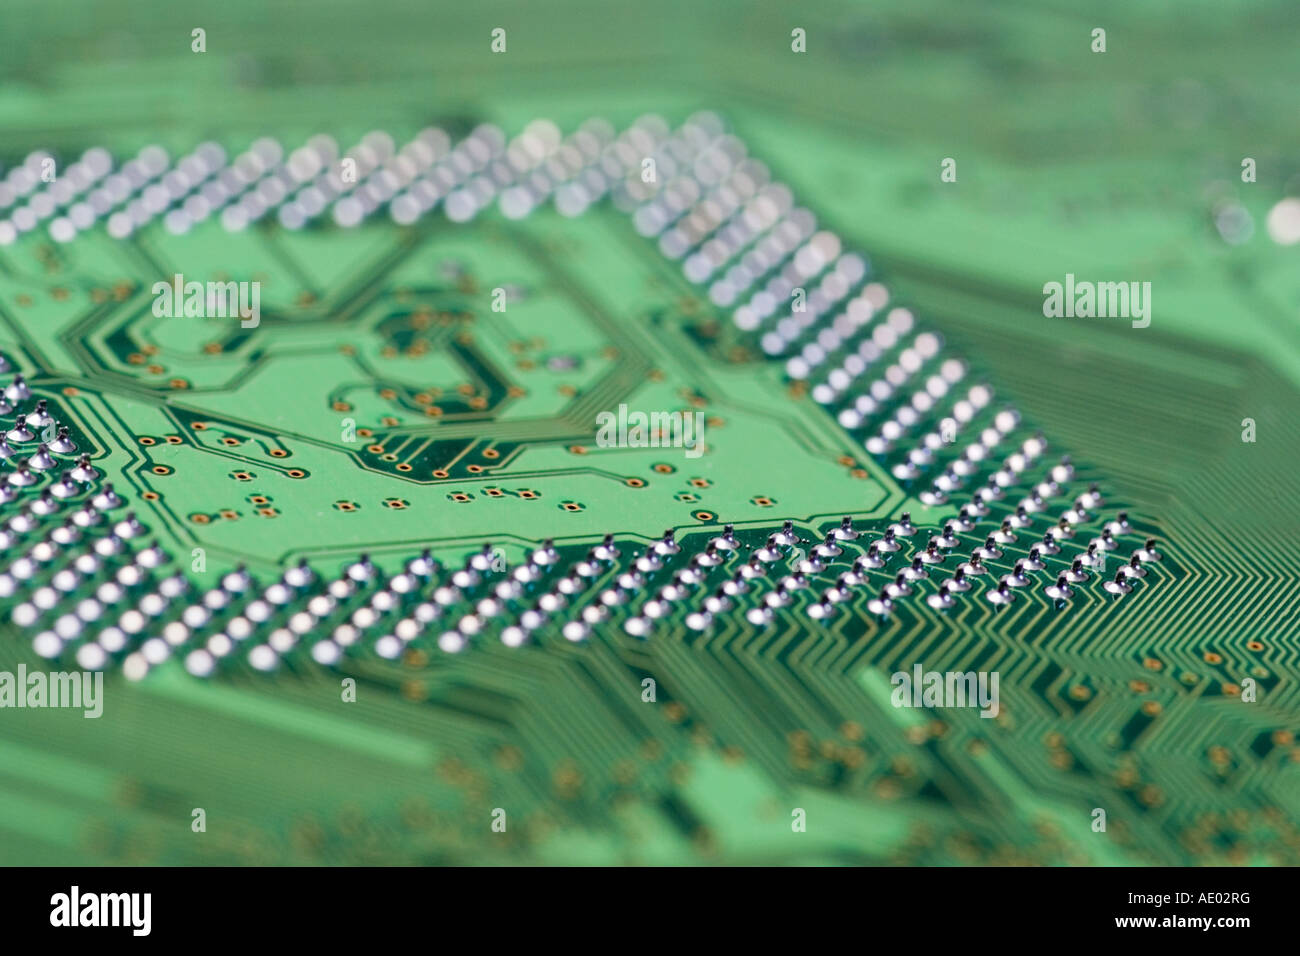 printed circuit board for microprcessor - Stock Image